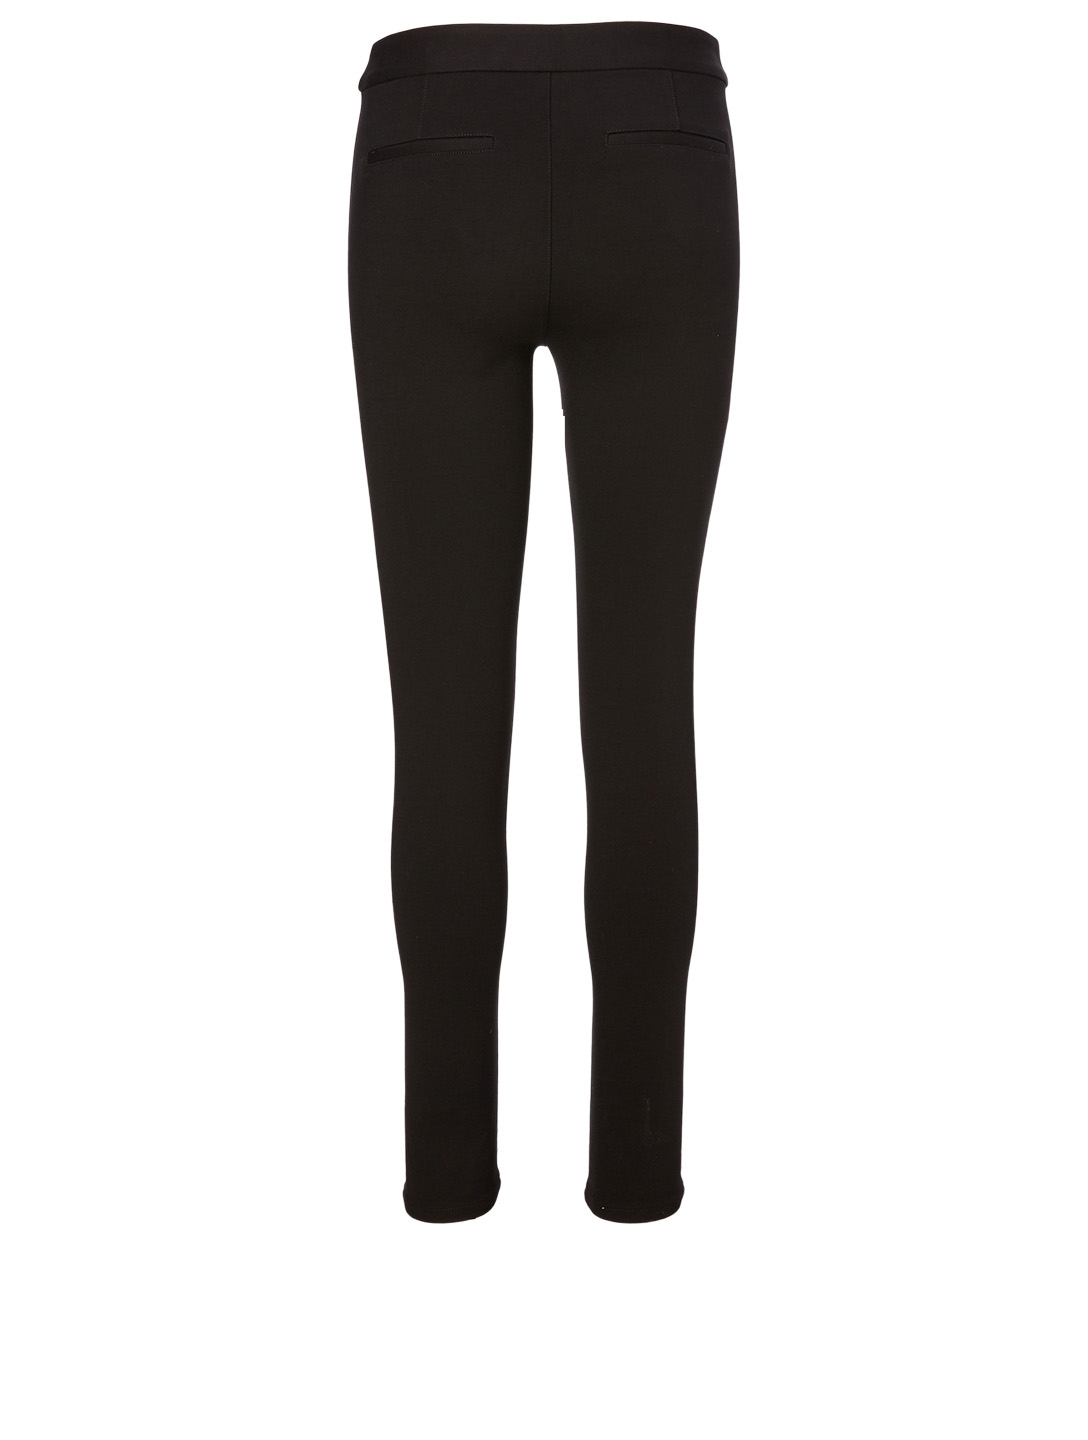 PAIGE Tezza Slim-Fit Pants Women's Black